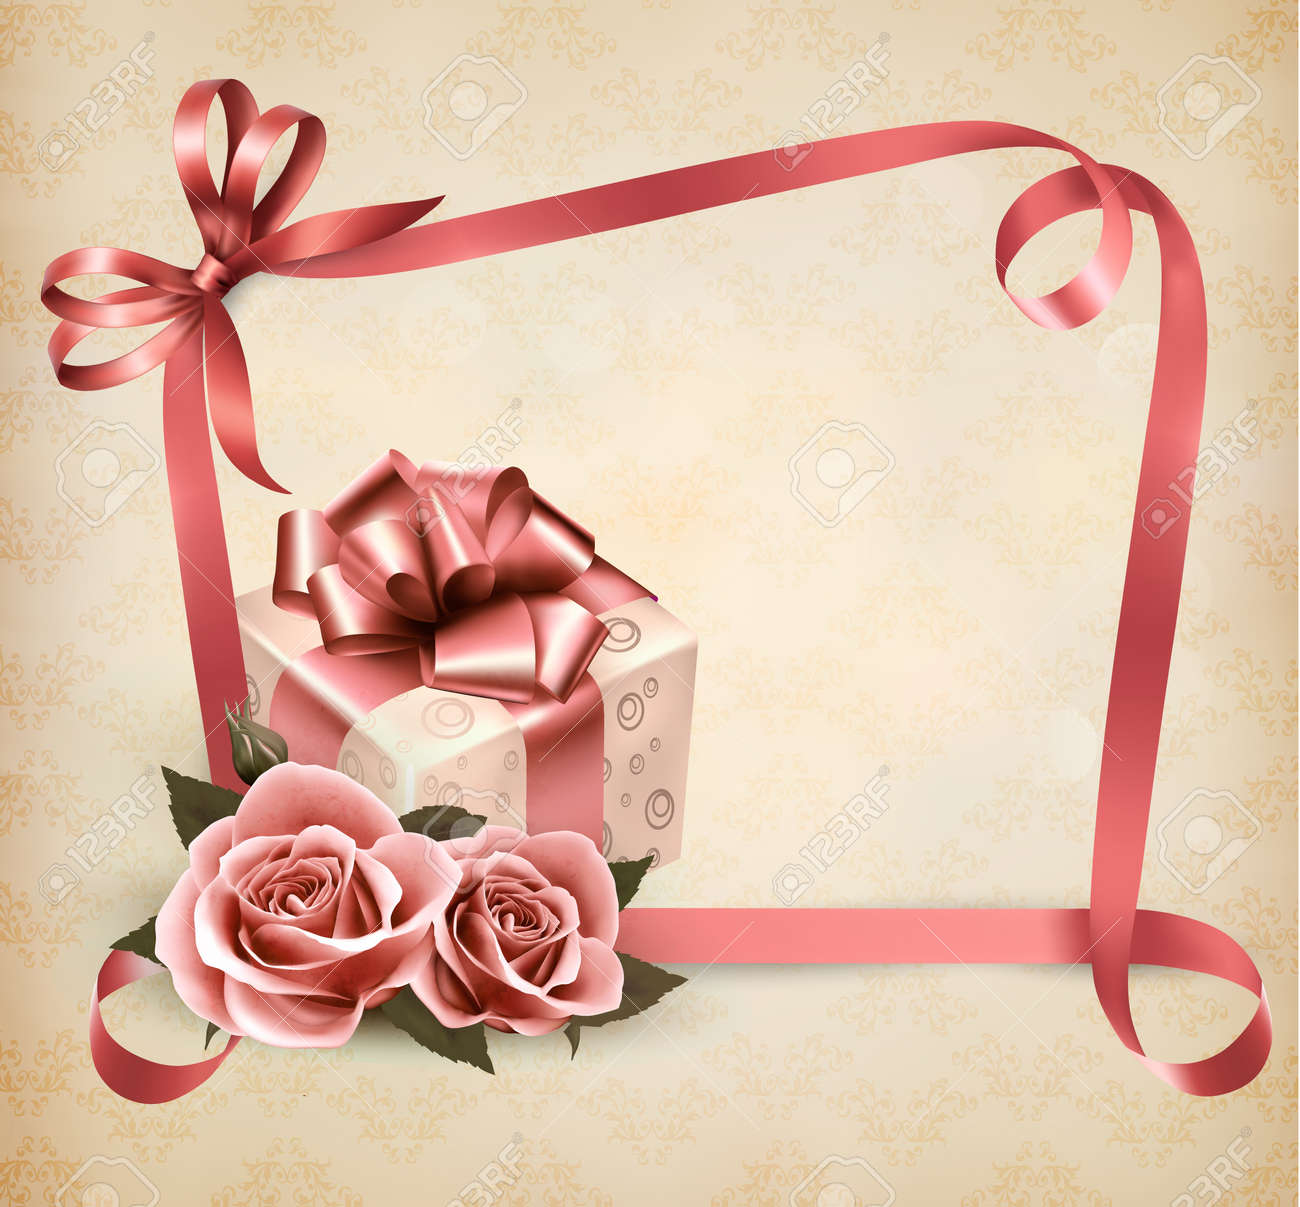 Holiday background with pink roses and gift box and ribbon. Stock Vector - 20193251